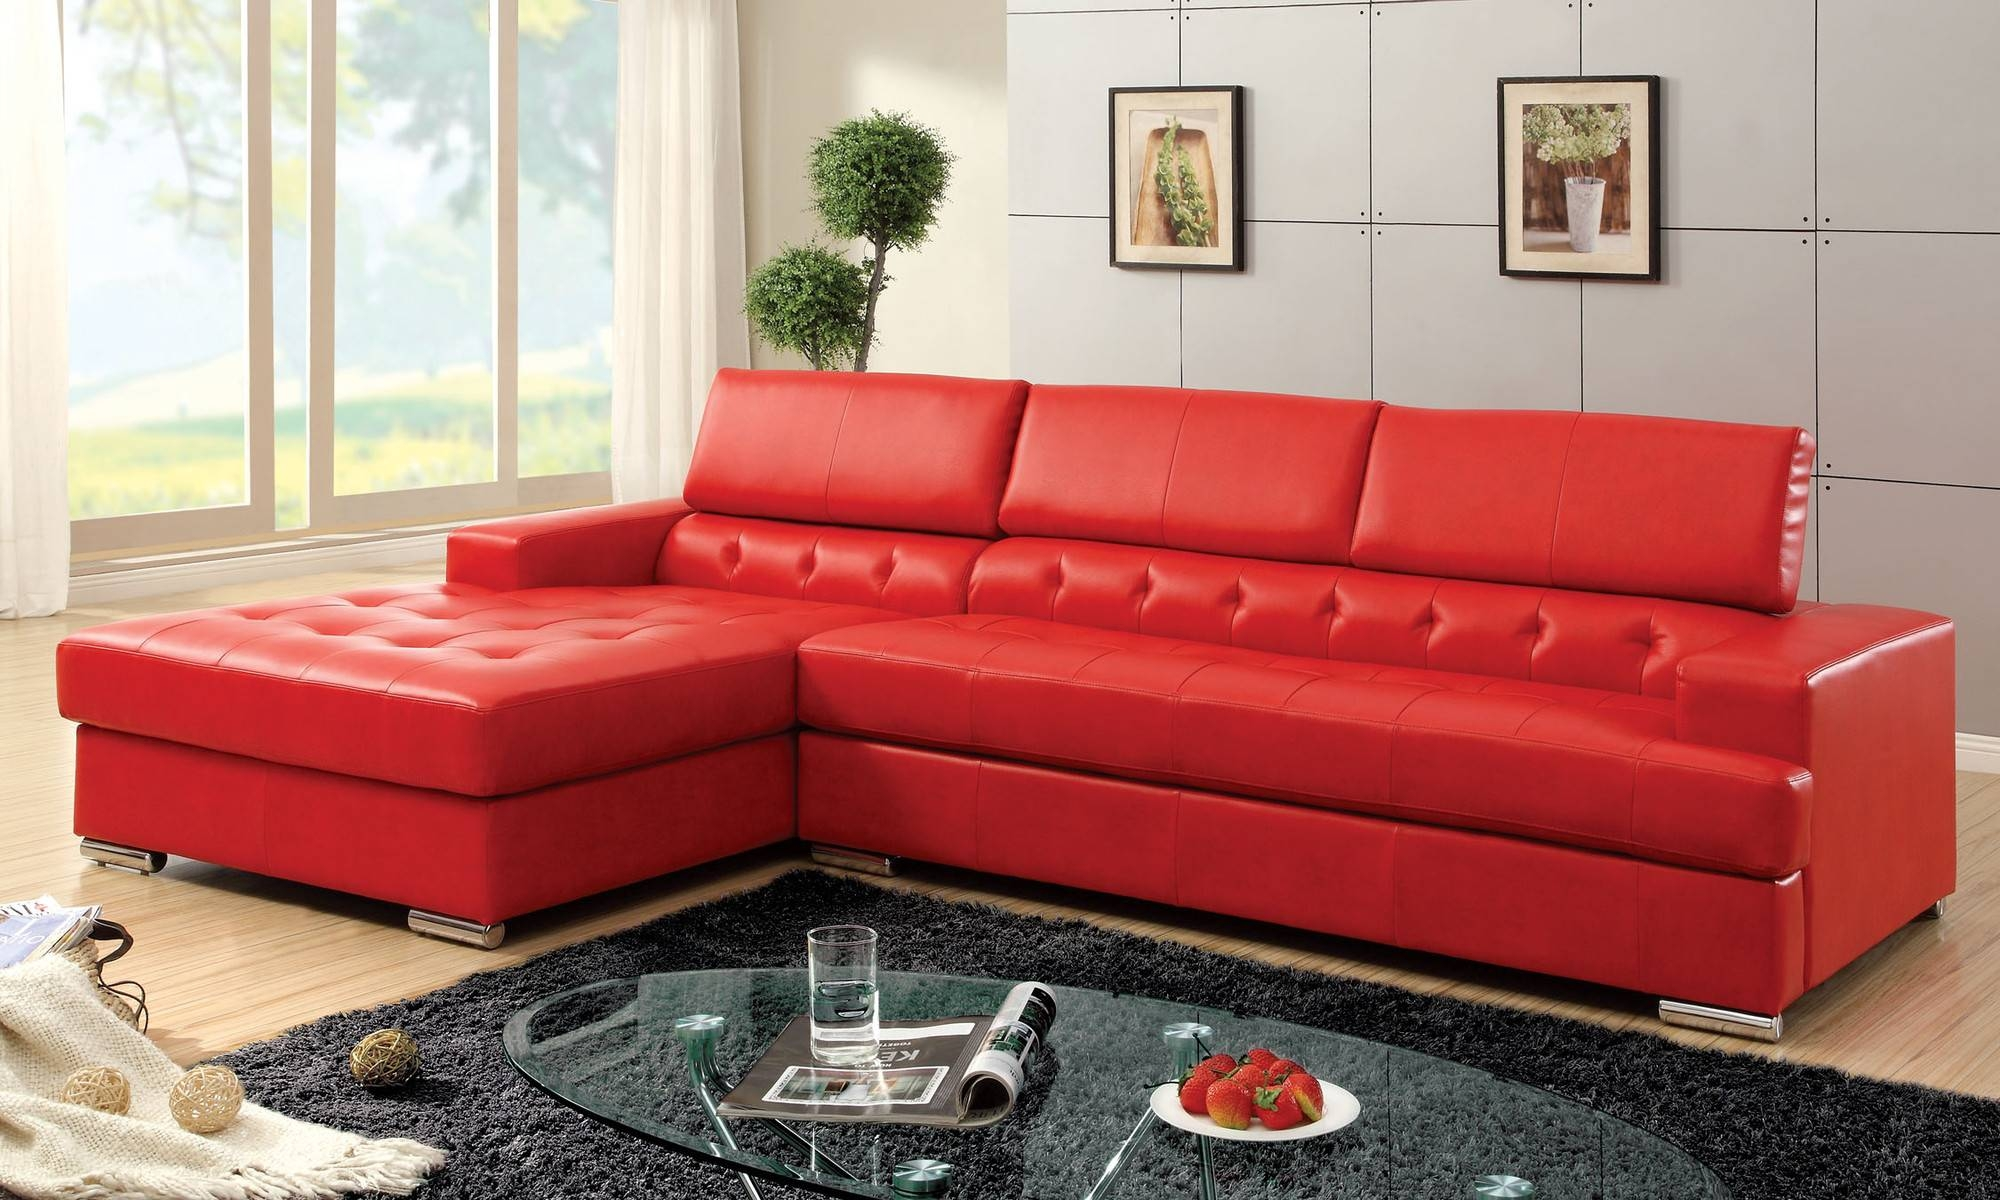 Red Sectional Sofas Images Of Photo Albums Red Sectional Sofa pertaining to Red Black Sectional Sofa (Image 24 of 30)